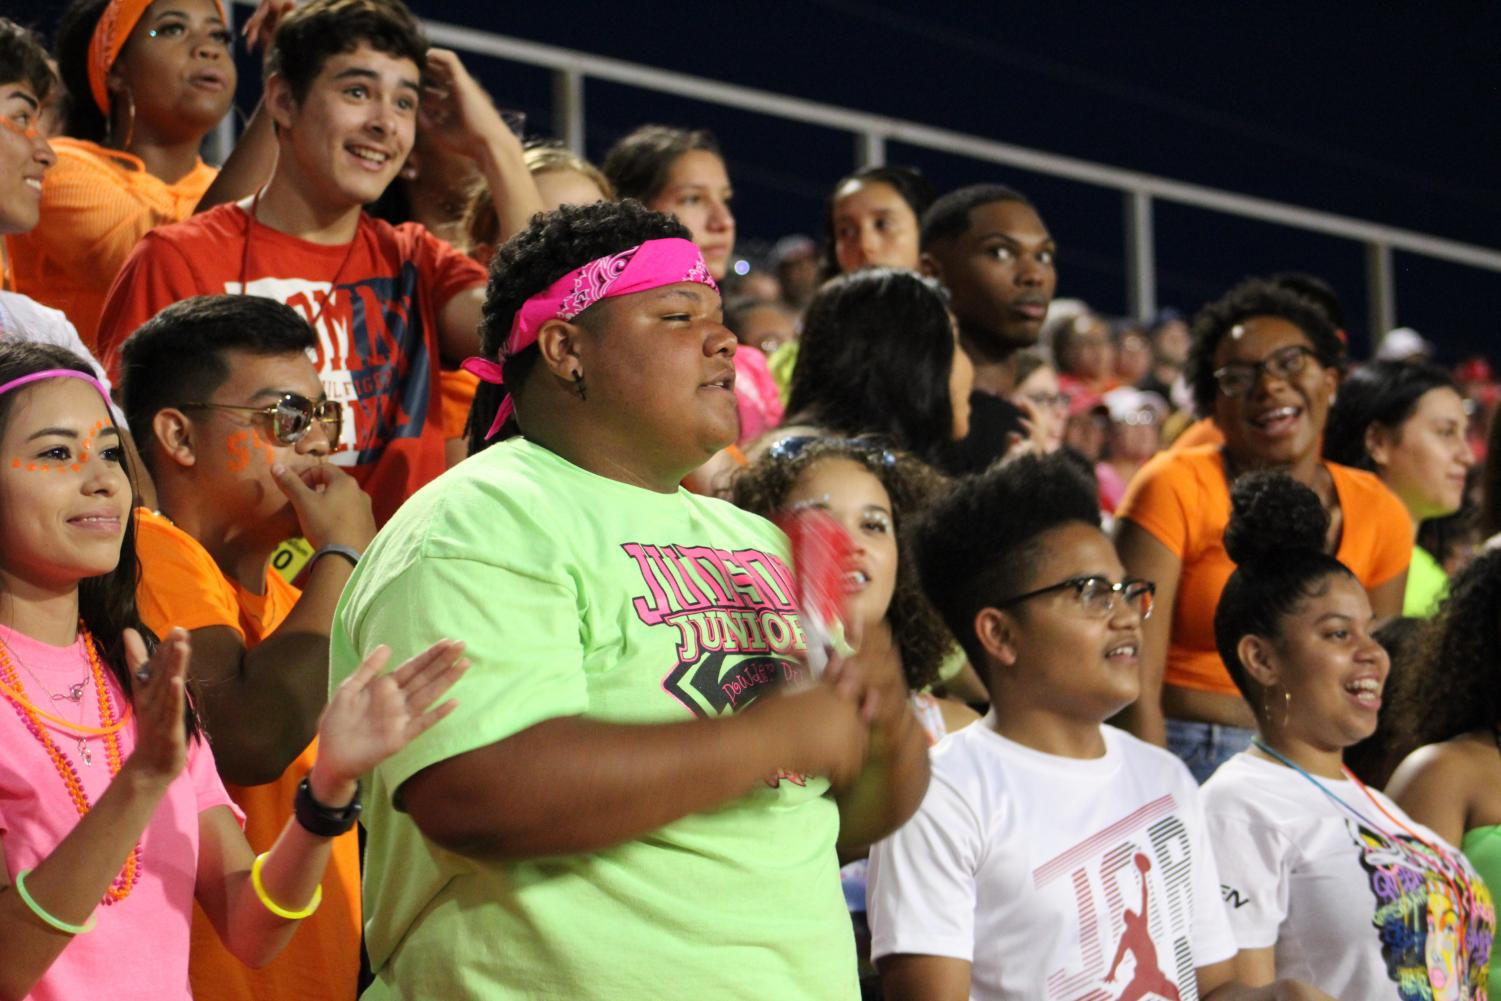 Senior Calvin Ashley leads the student section during the Steele game. The theme of the game was neon colors.